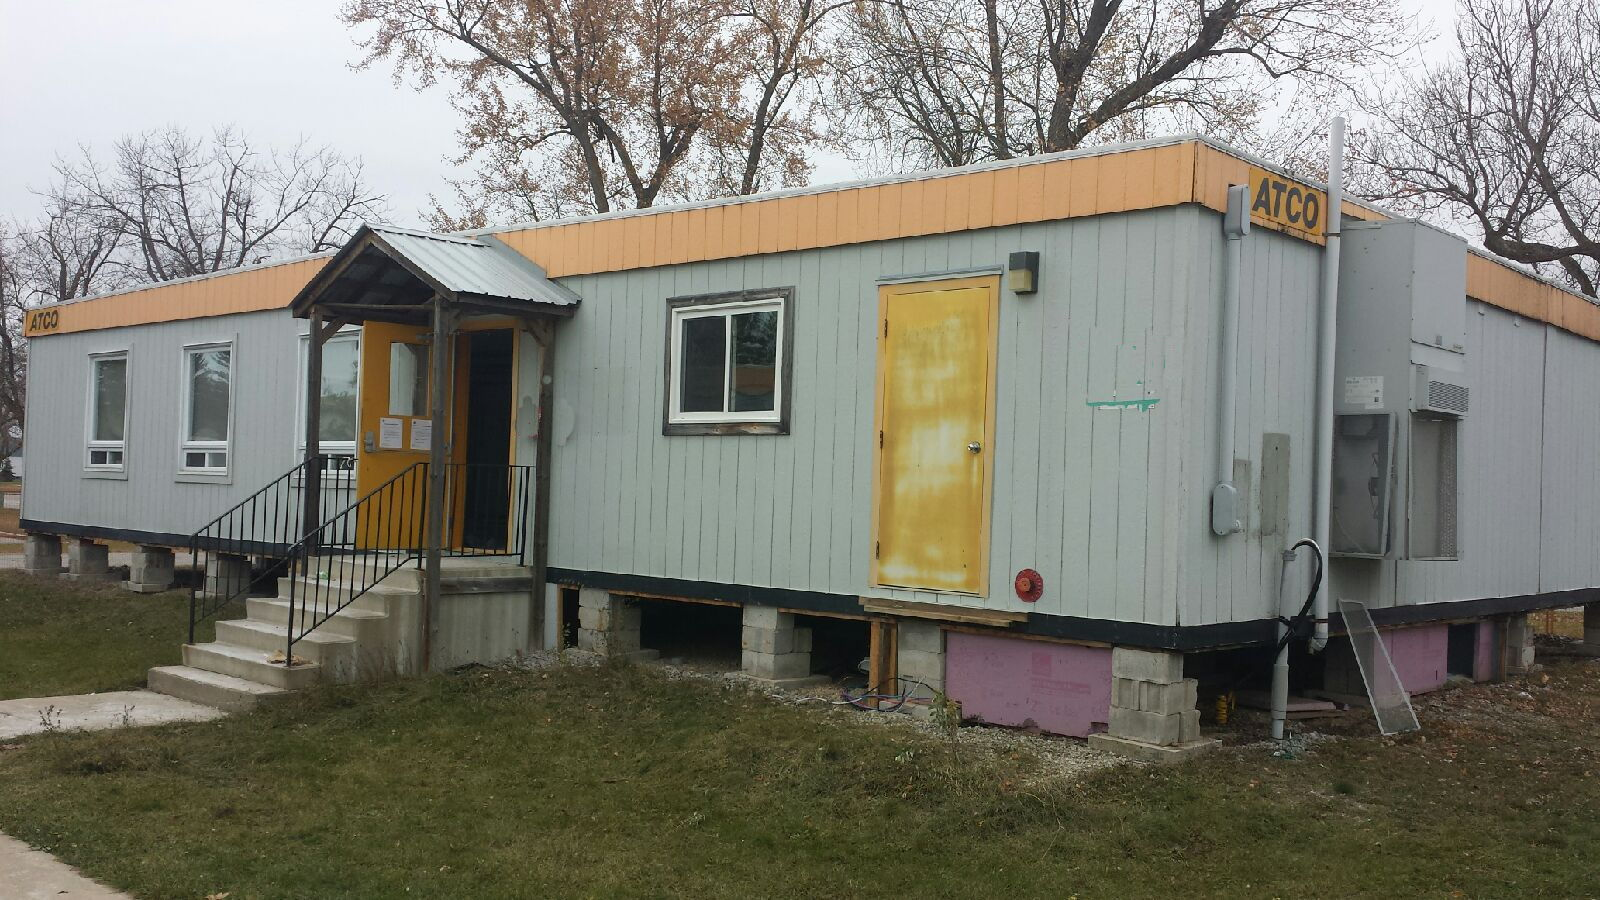 2100 sq ft portable building with washroom pic17